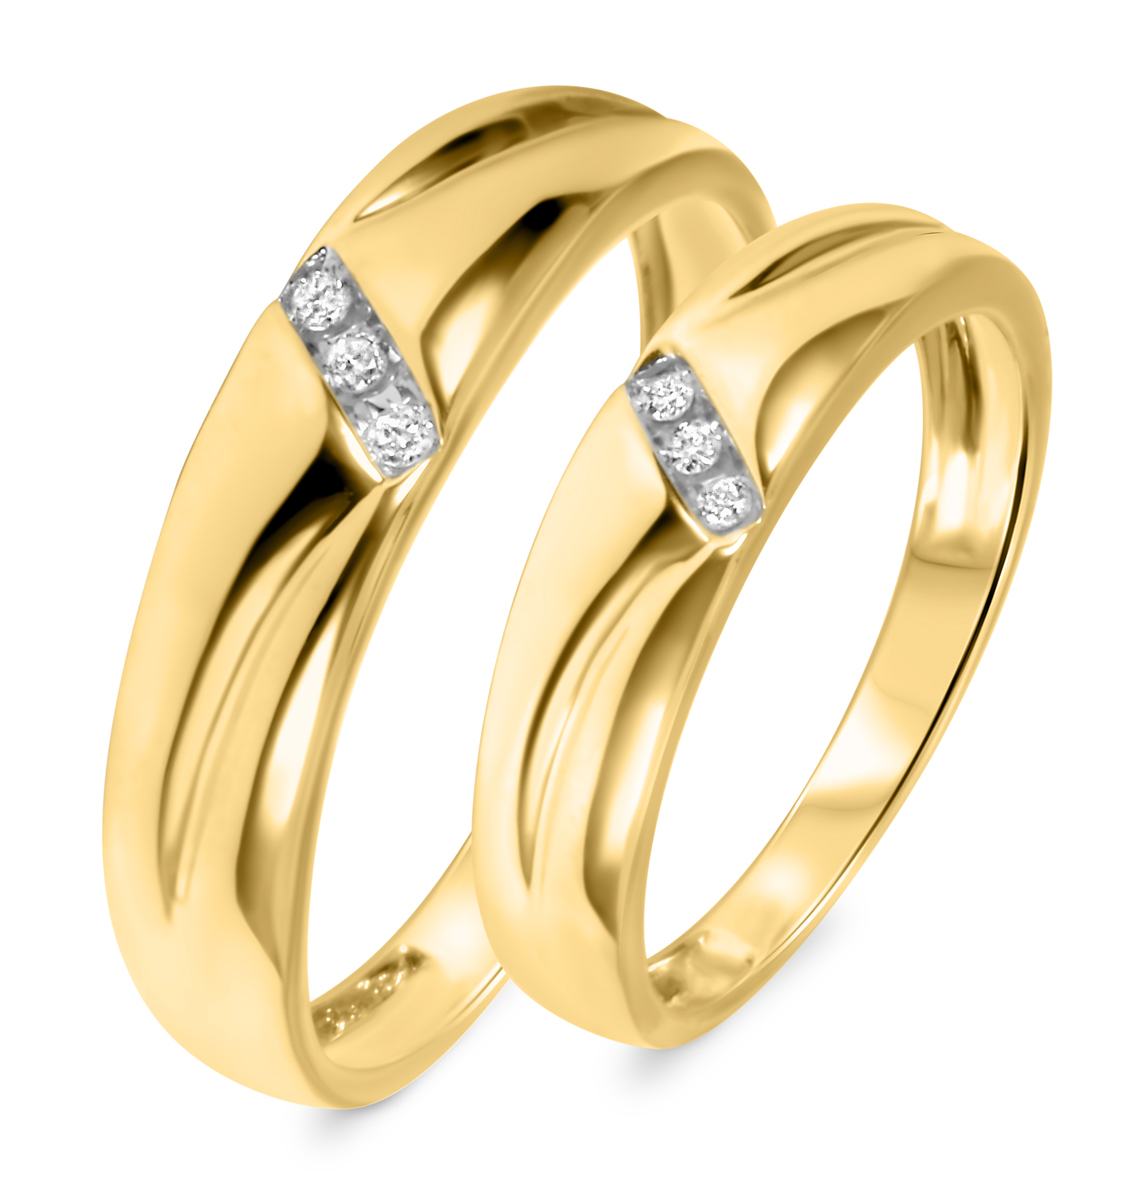 110 ct tw diamond his and hers wedding band set 10k yellow gold tw diamond his and hers wedding band set 10k yellow gold junglespirit Choice Image